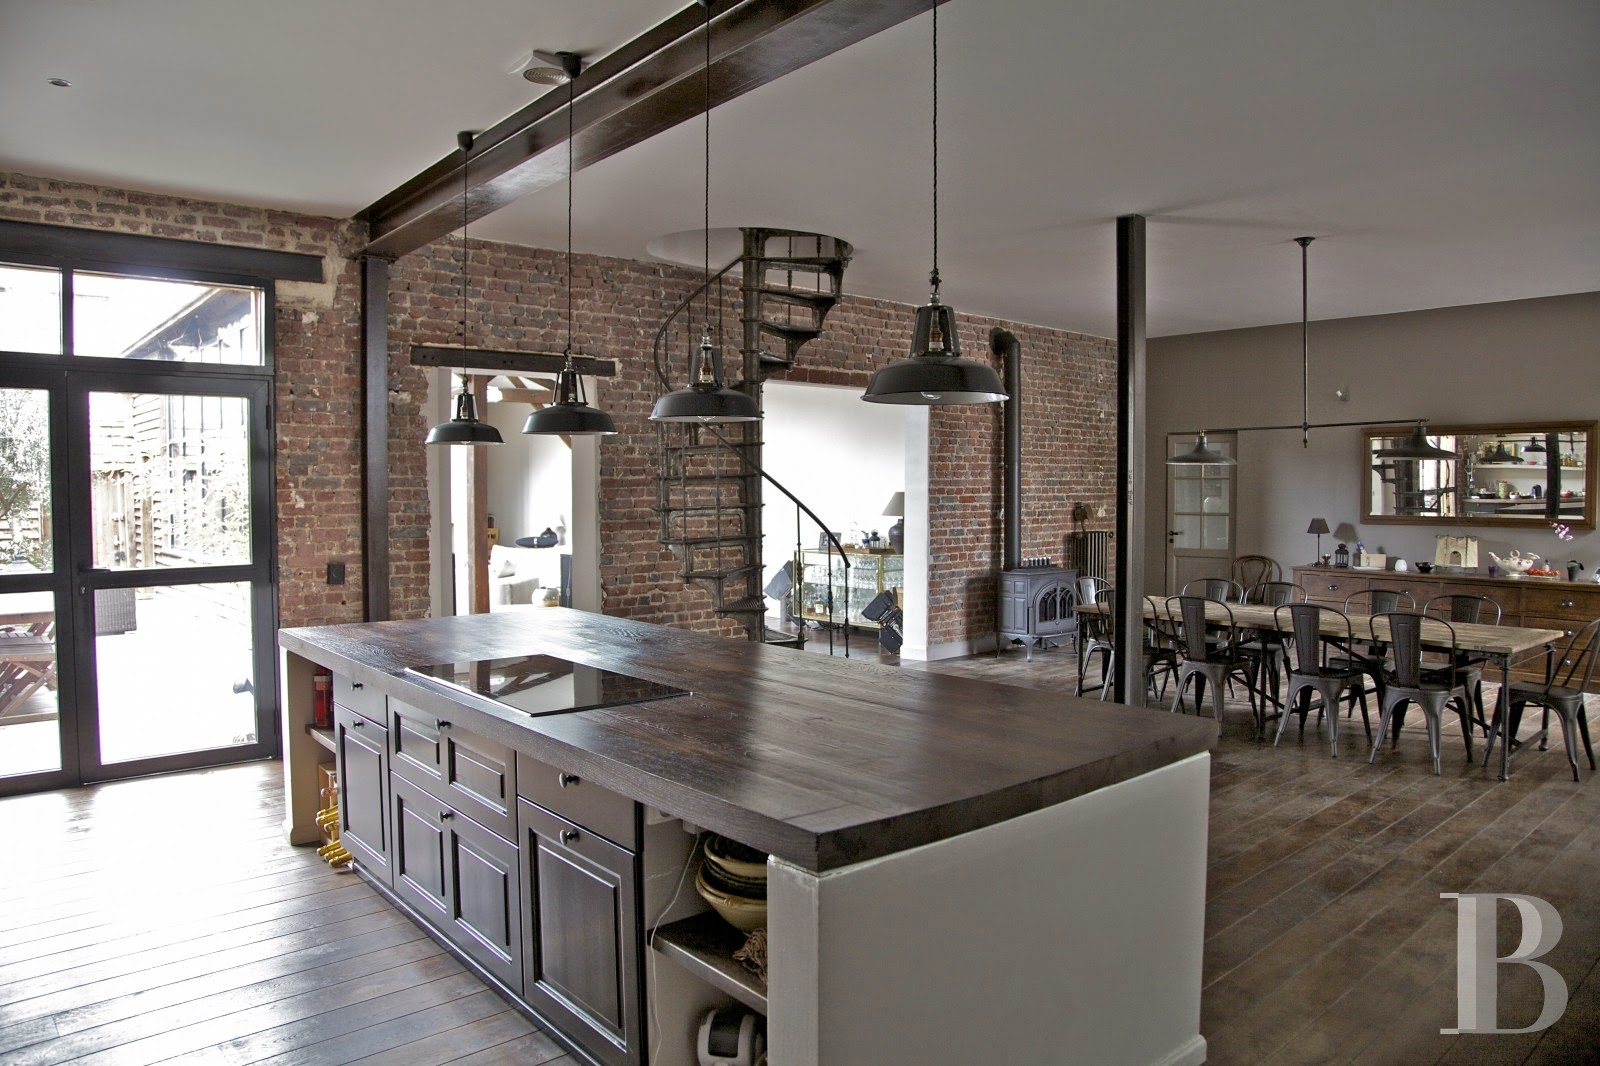 Planos low cost marzo 2015 - Industrial modern kitchen designs ...